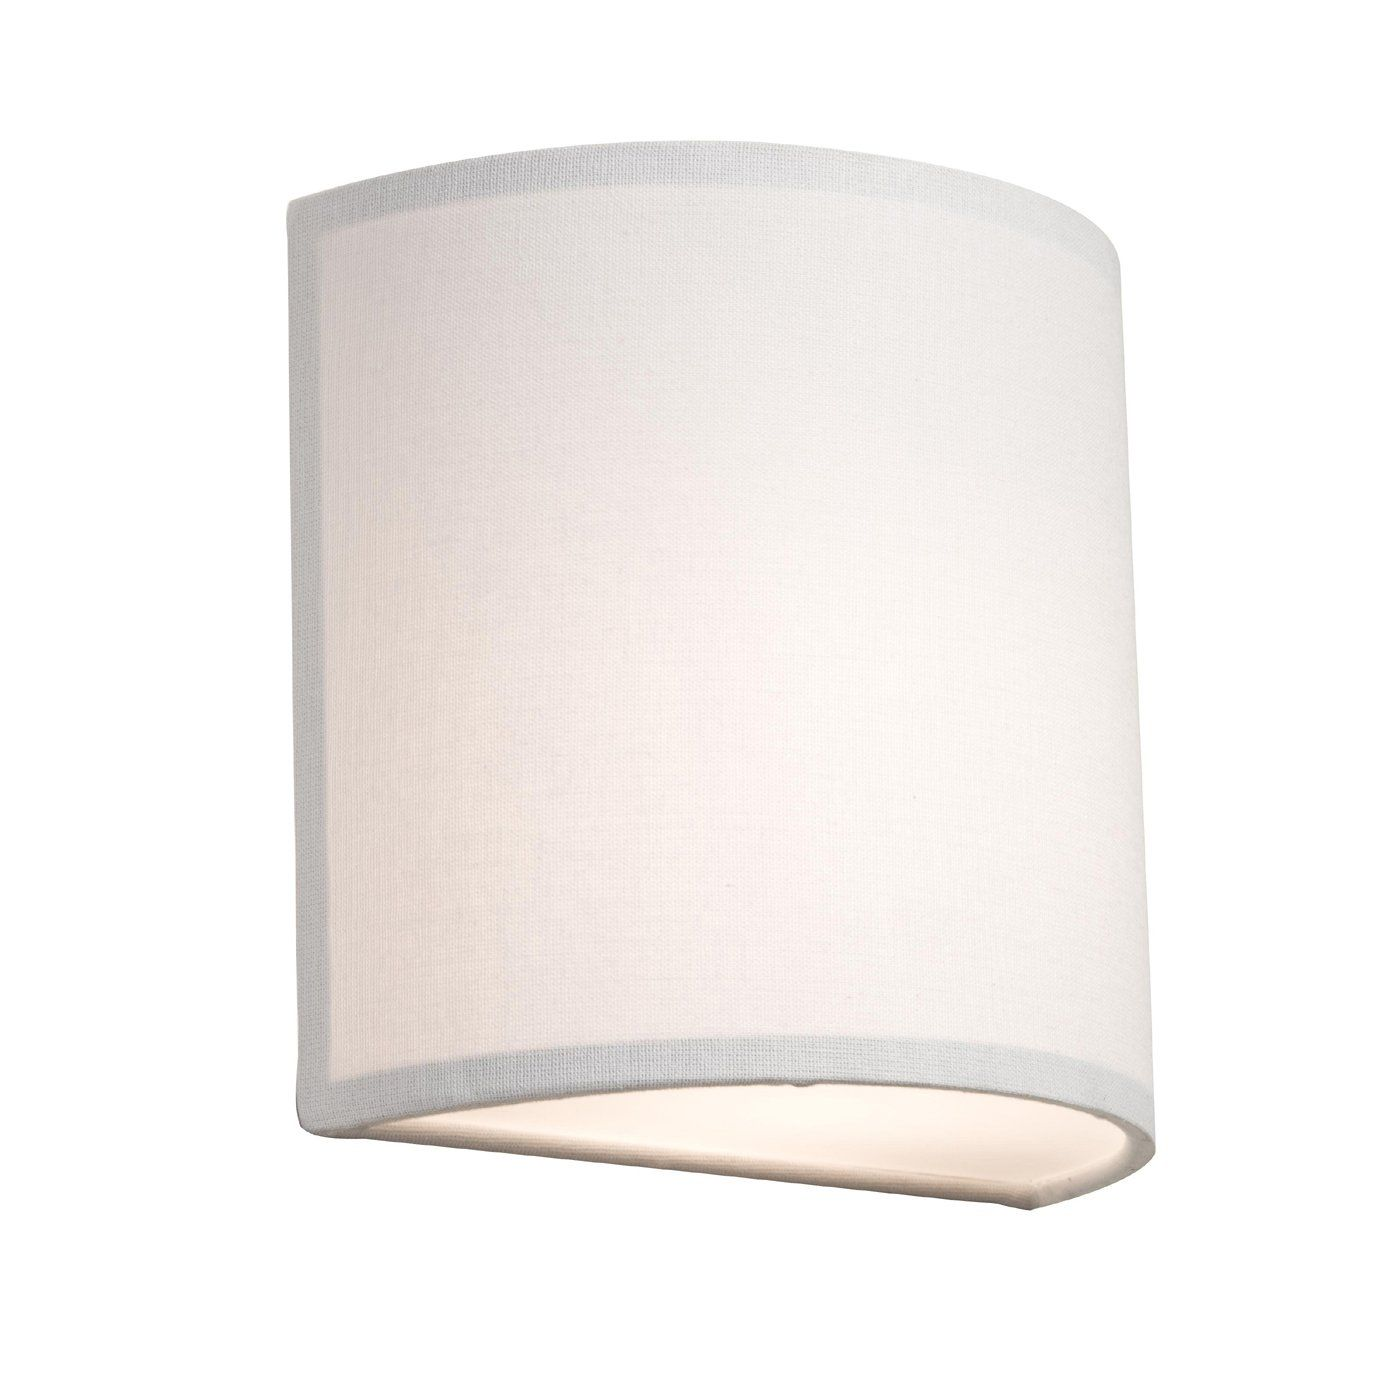 Steven Chris Sc526 Mercer Street Wall Sconce Wall Sconces Pocket Wall Sconce Wall Sconce Lighting